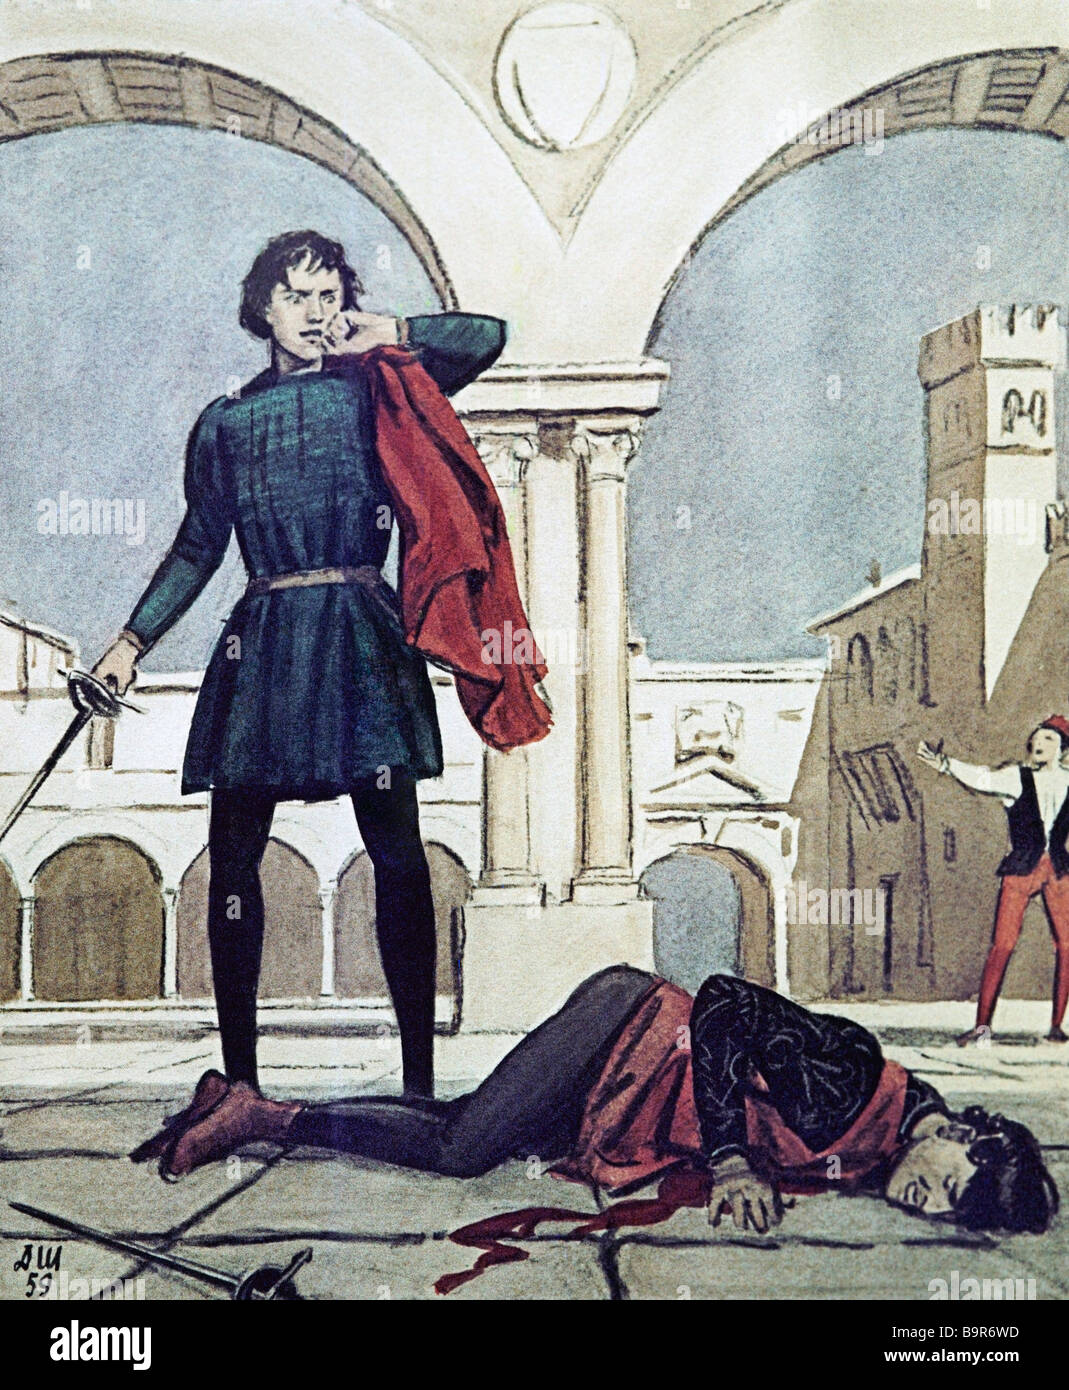 The death of Tybalt by Dementy Shmarinov 1907 1999 Illustration to Shakespeare s tragedy Romeo and Juliet - Stock Image